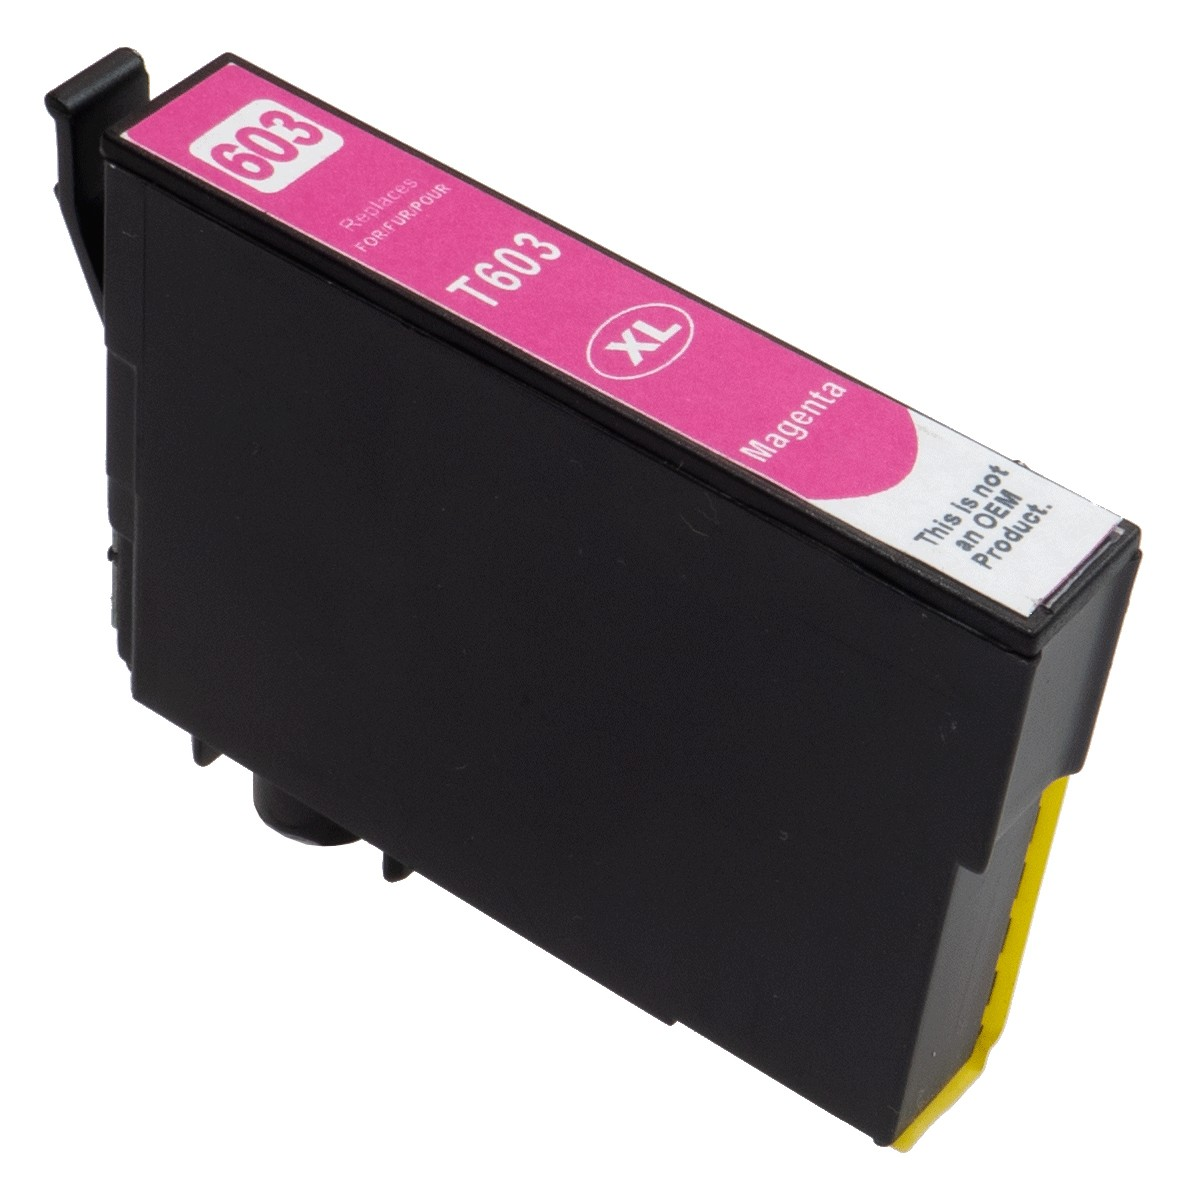 Μελάνι EPSON Συμβατό 603XL C13T03A34010 Σελίδες:350 Magenta για WF, XP, 2100, 2105, 2810DWF, 2830DWF, 2835DWF, 2850DWF WorkForce